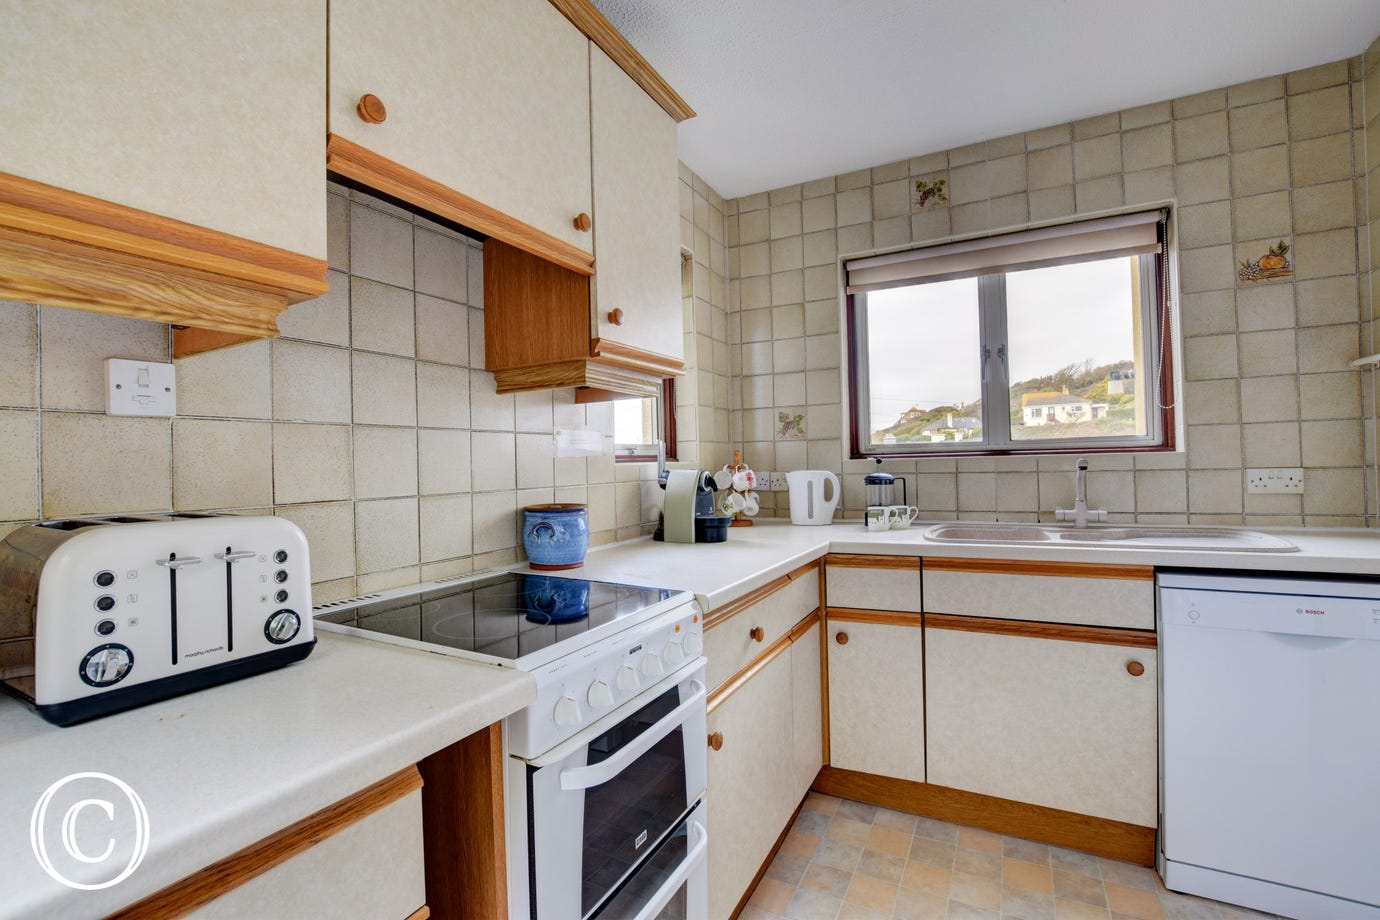 Kitchen: Excellent sea views. Oven with grill and a four ring hob, microwave, fridge/freezer, dishwasher and a good range of cooking utensils.